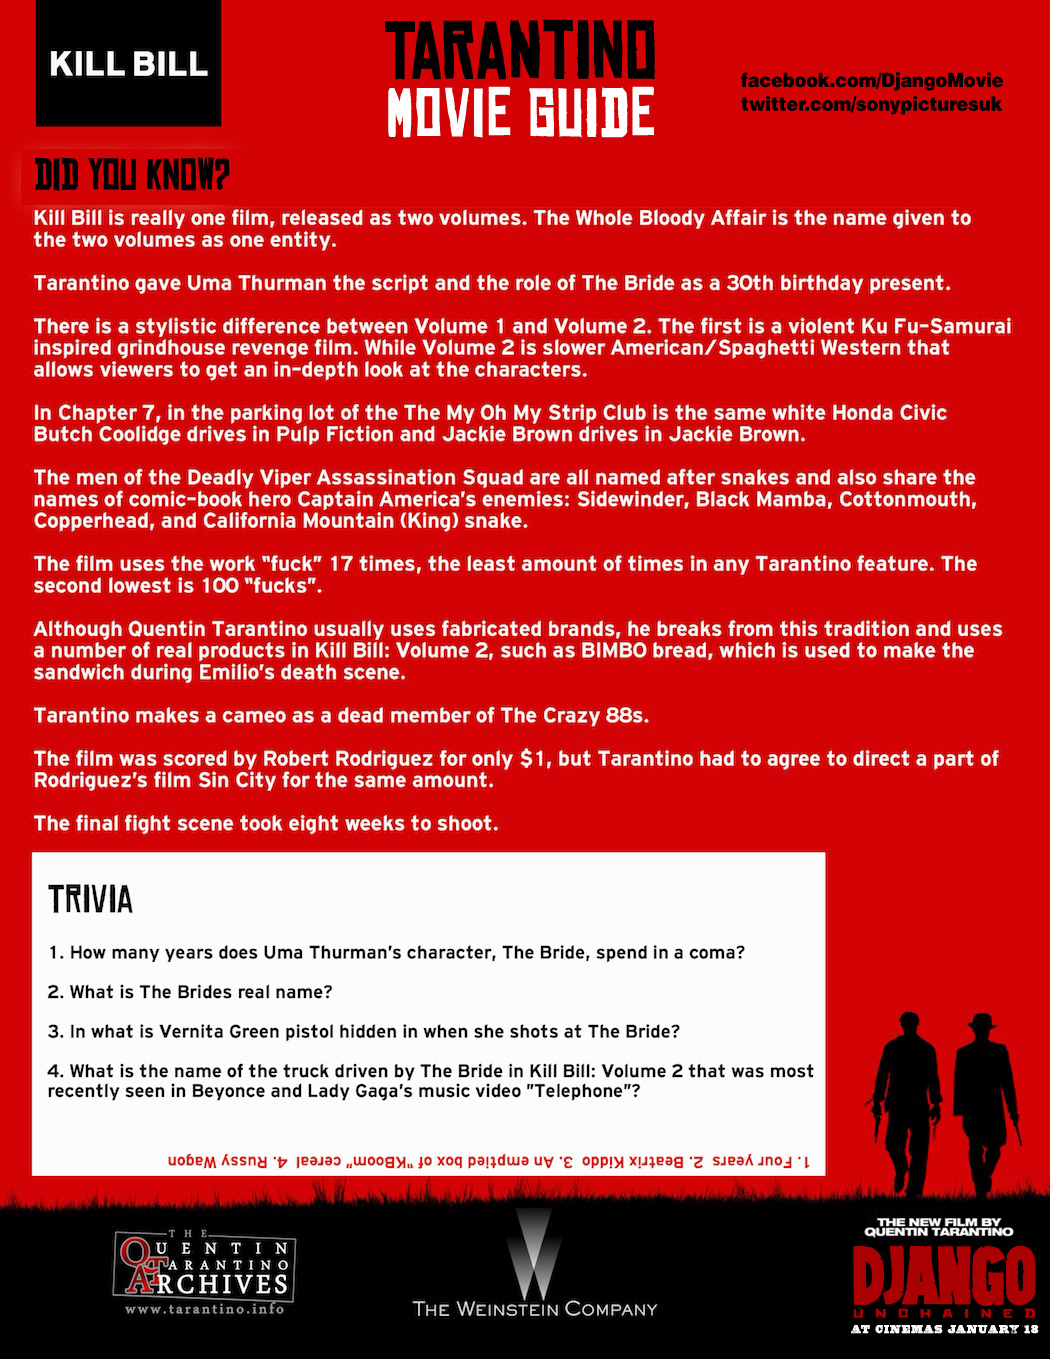 Tarantino Movie Guide - Kill Bill